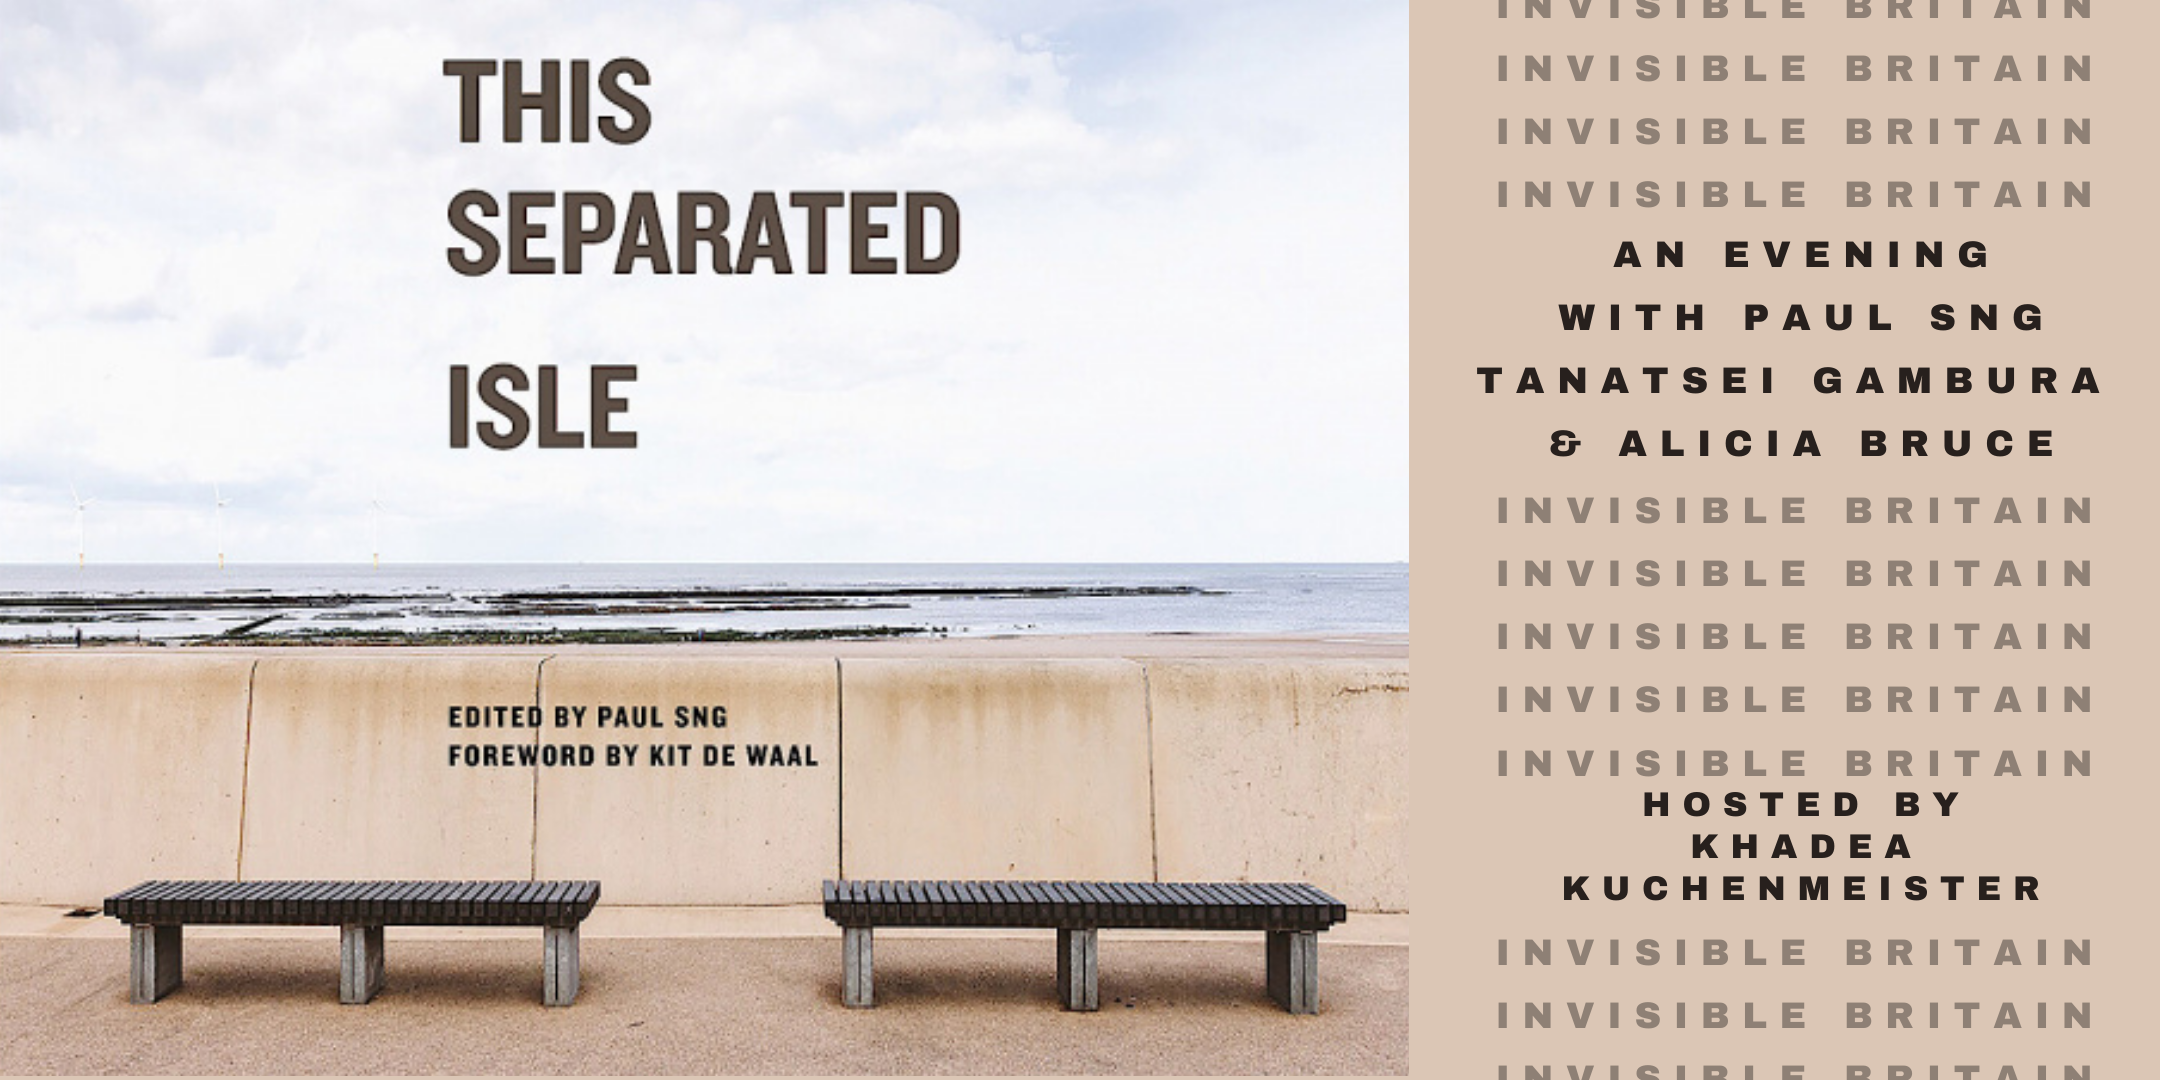 This Separated Isle: Portrait of an Invisible Britain, with Paul Sng, Khadea Kuchenmeister, Tanatsei Gambura & Alicia Bruce